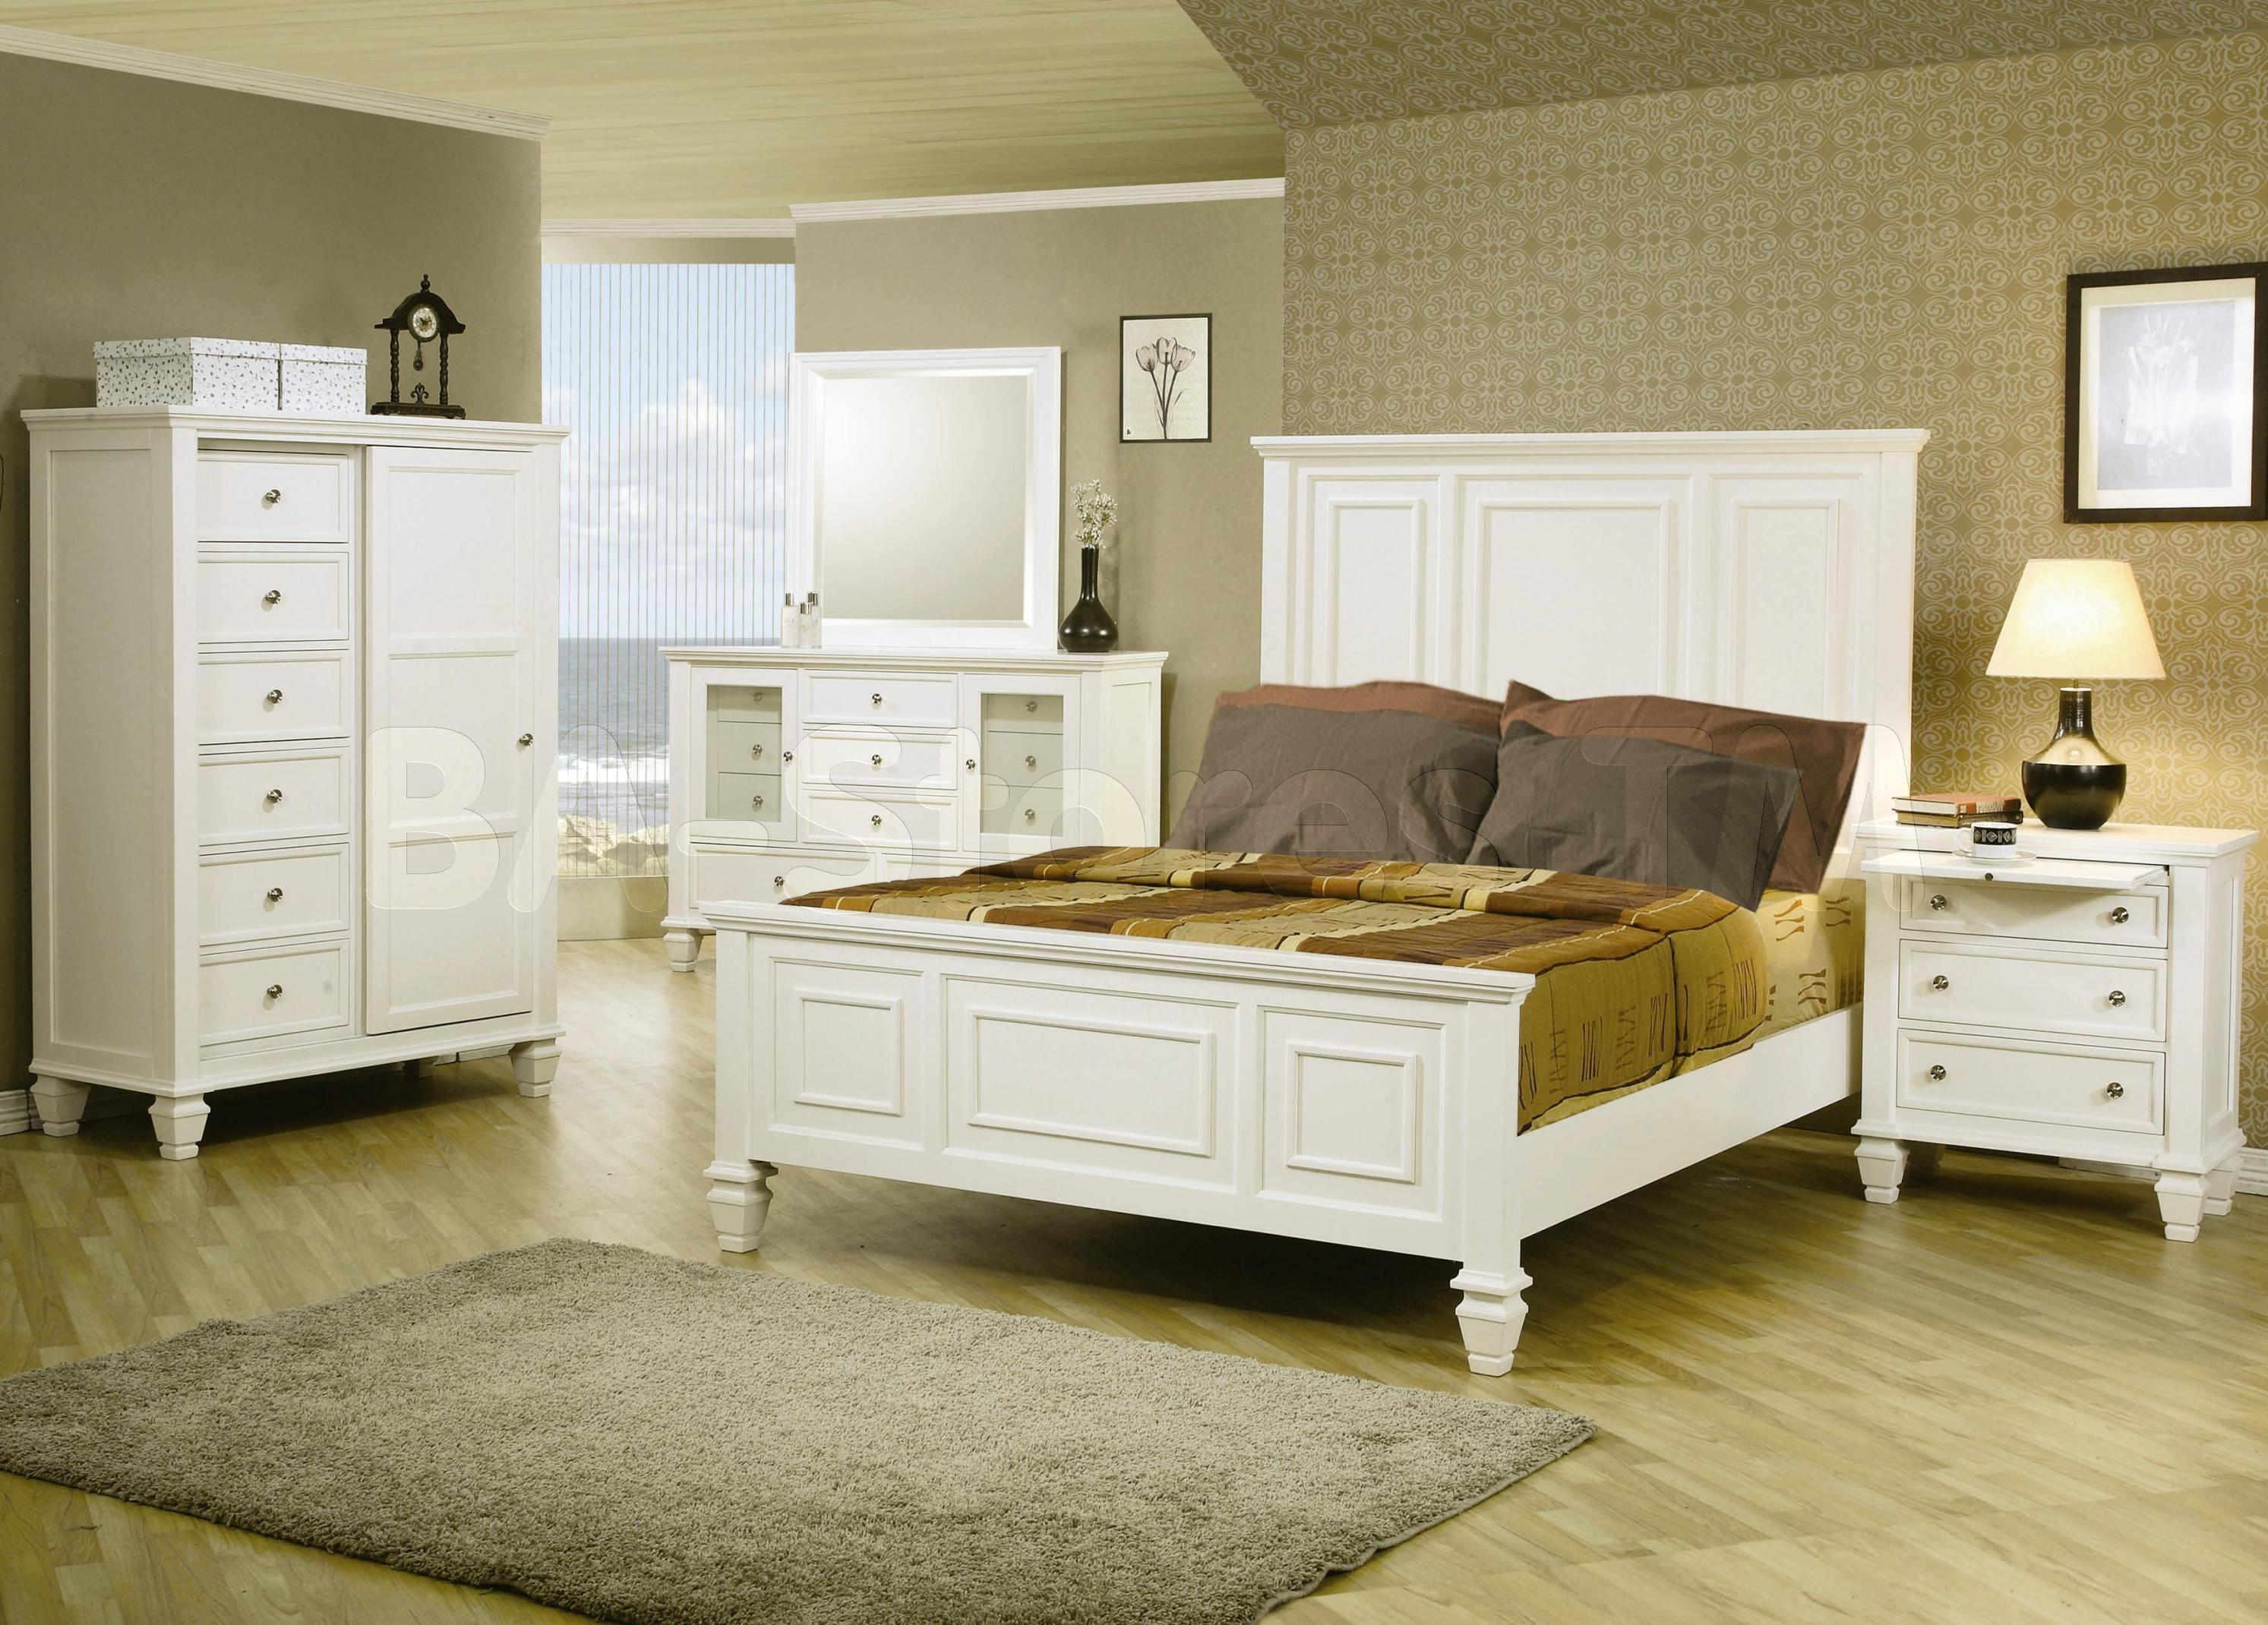 Solid wood bedroom furniture for kids 20 tips for best quality